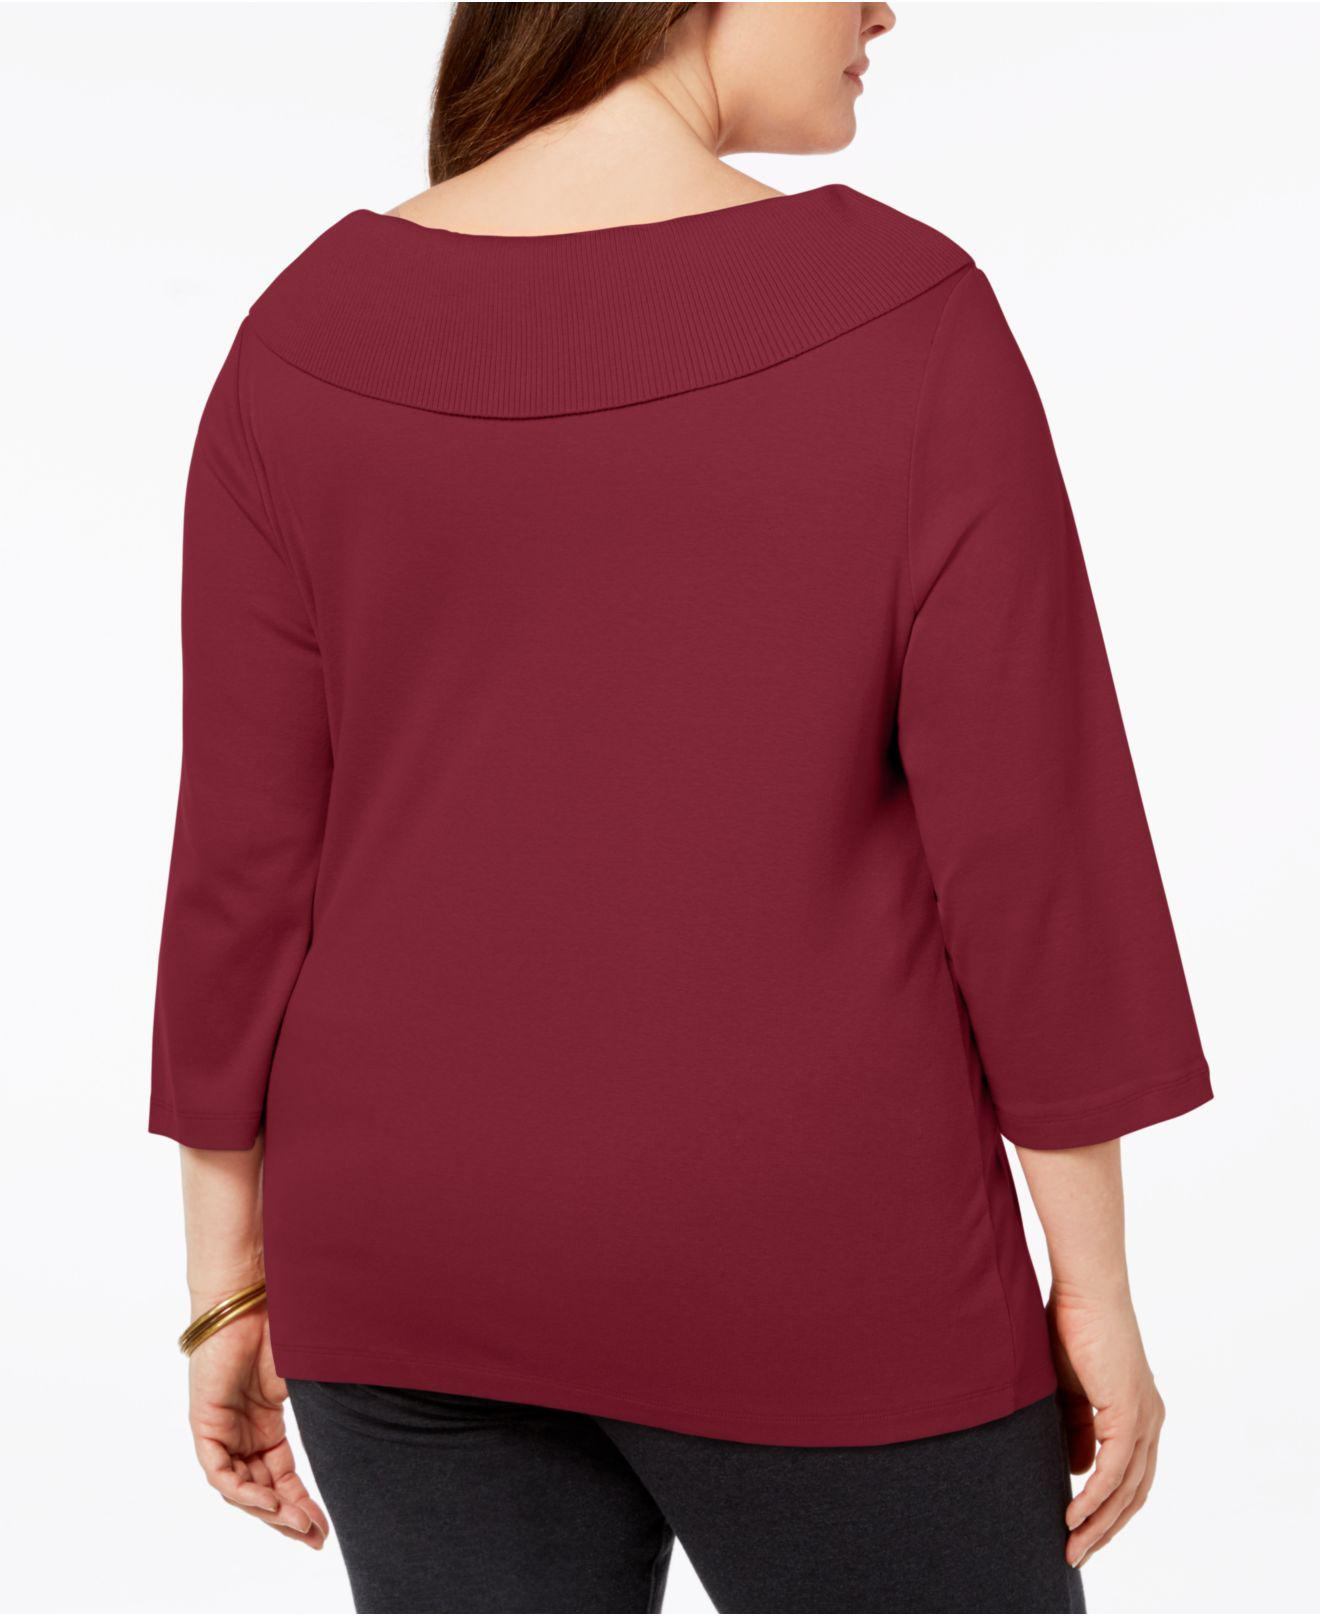 486cfda77e7c4 Lyst - Karen Scott Plus Size Cotton Boat-neck Top